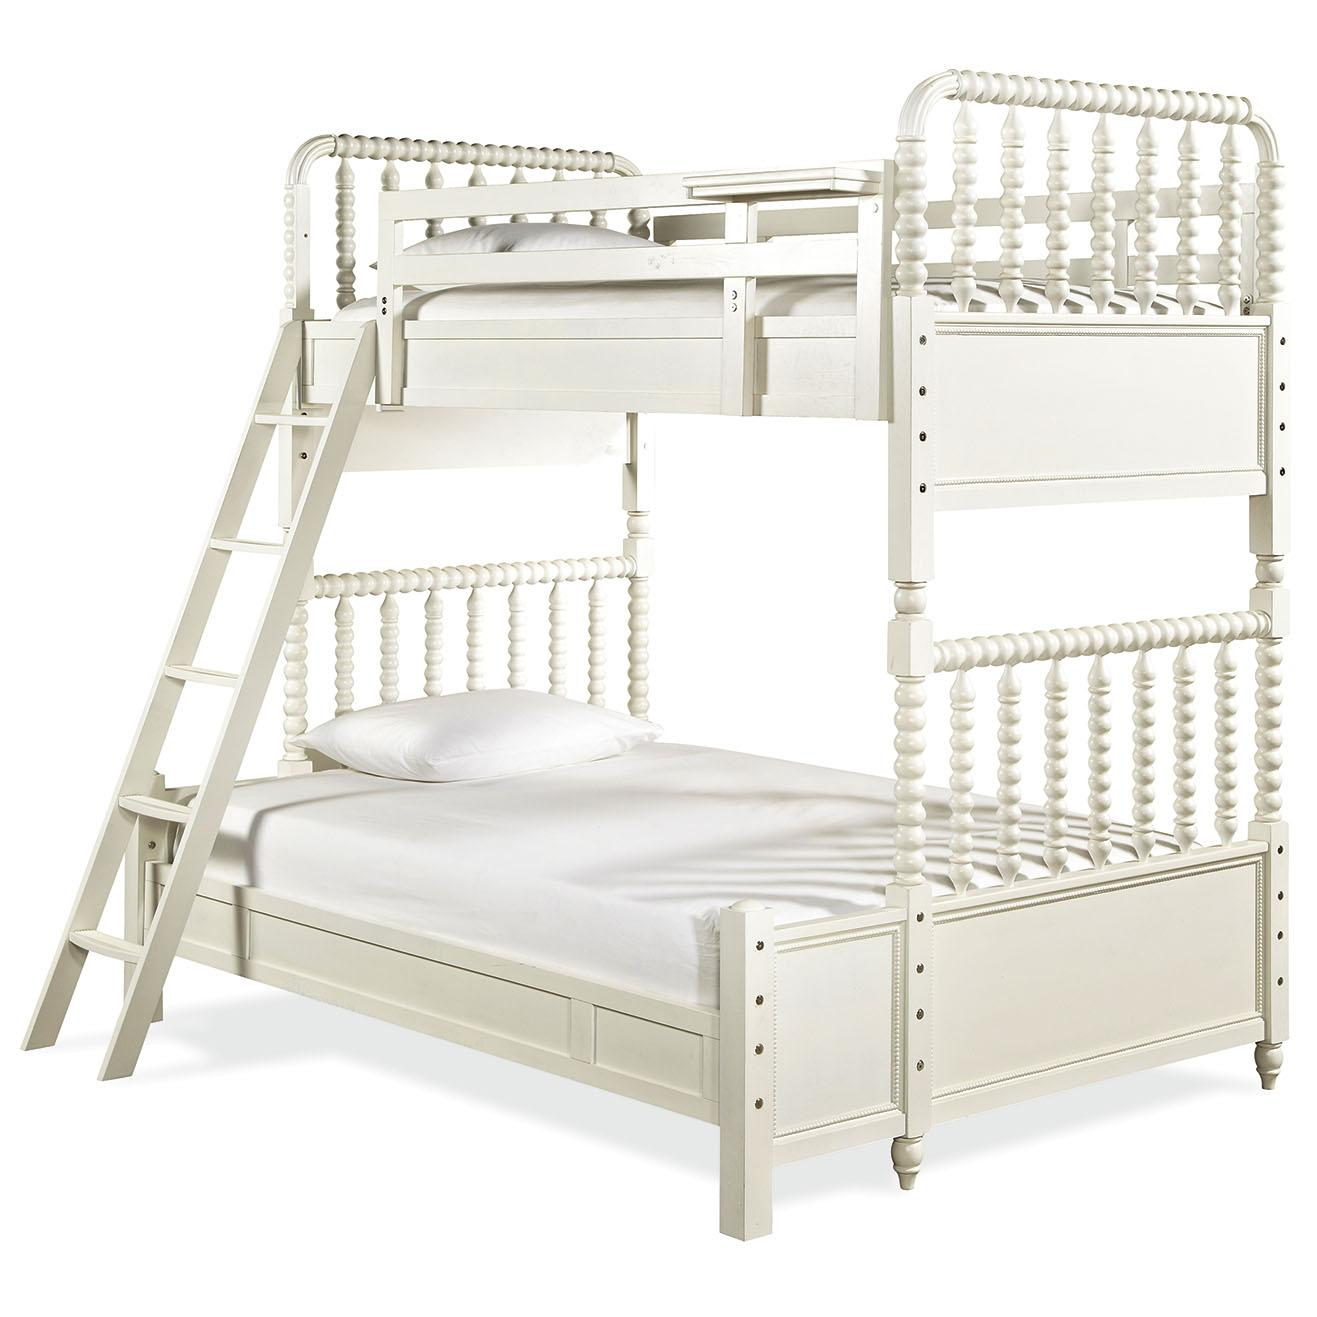 Smartstuff Bellamy Vintage Bunk Bed - Item Number: 330A530+590